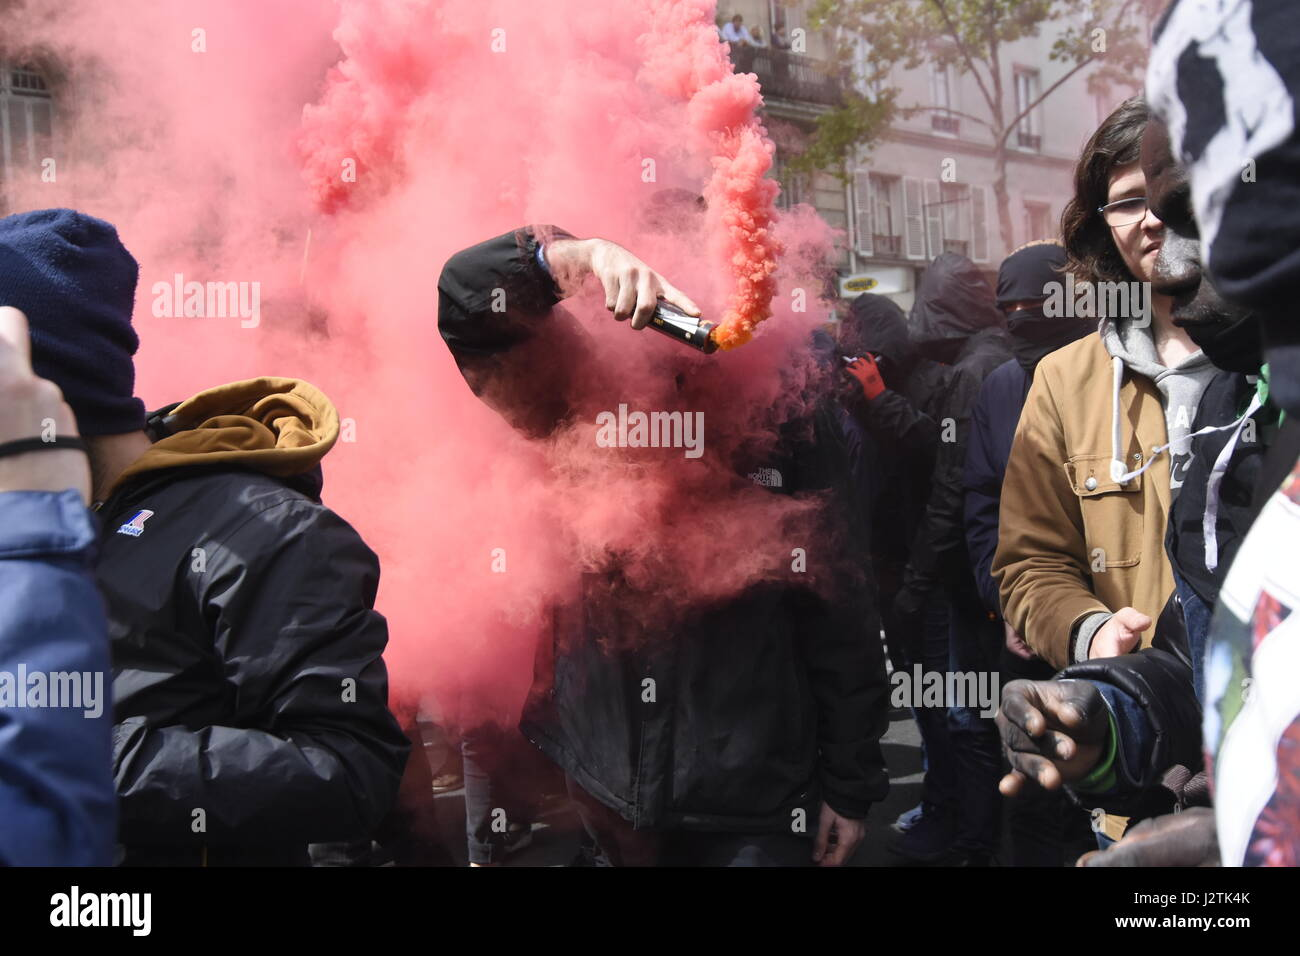 Paris, France. 1st May, 2017. Demonstration in Paris to protest the presence of Marine Le Pen and Emmanuel Macron - Stock Image